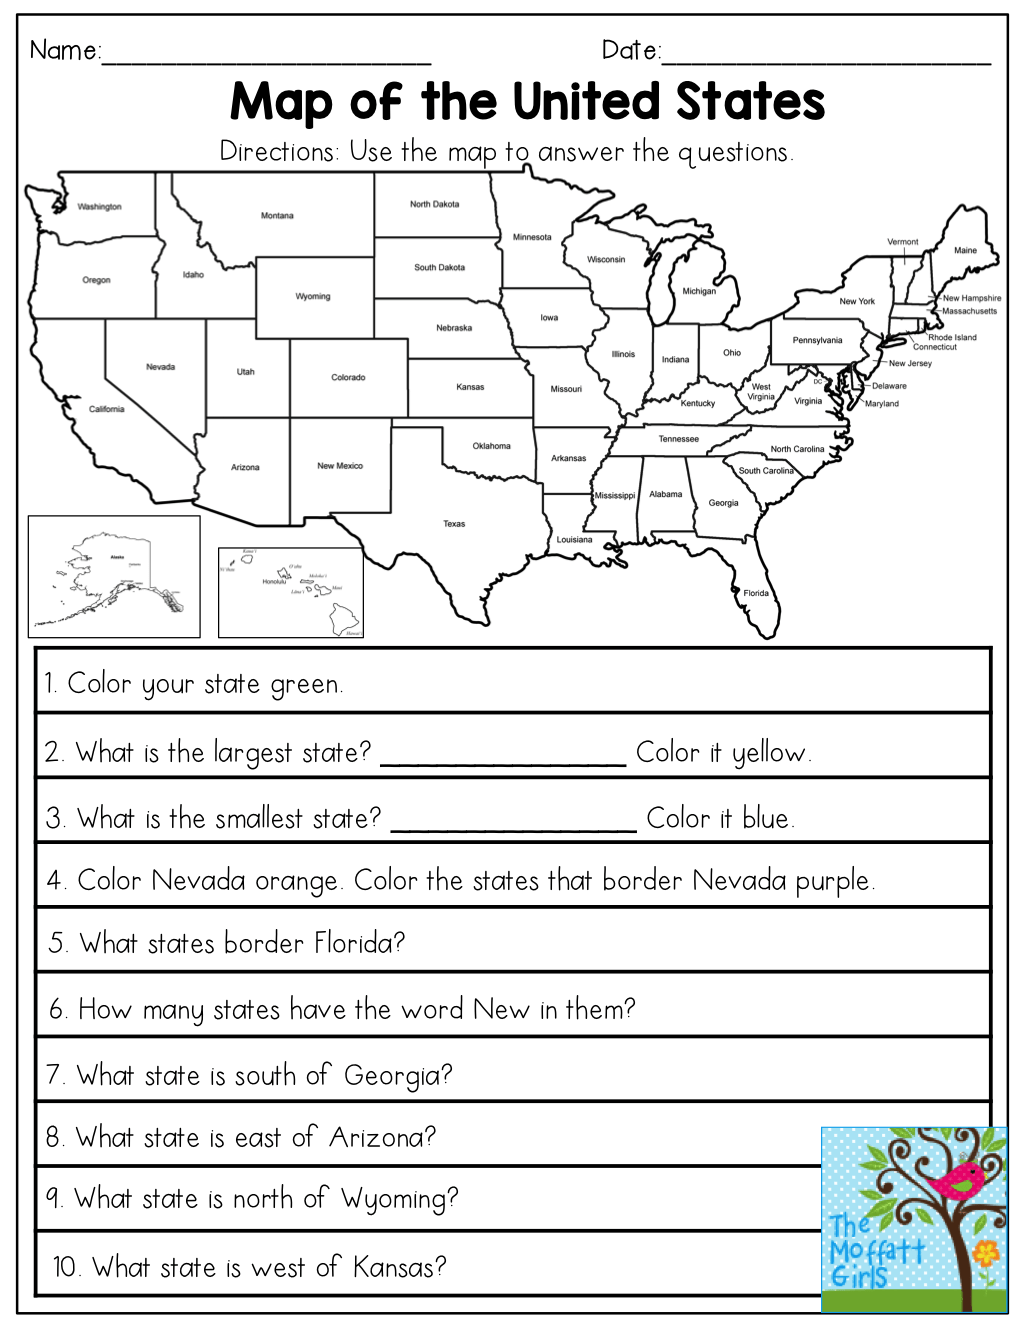 Map Of The United States Answer The Questions This November No Prep Packet For 3rd Grade Is